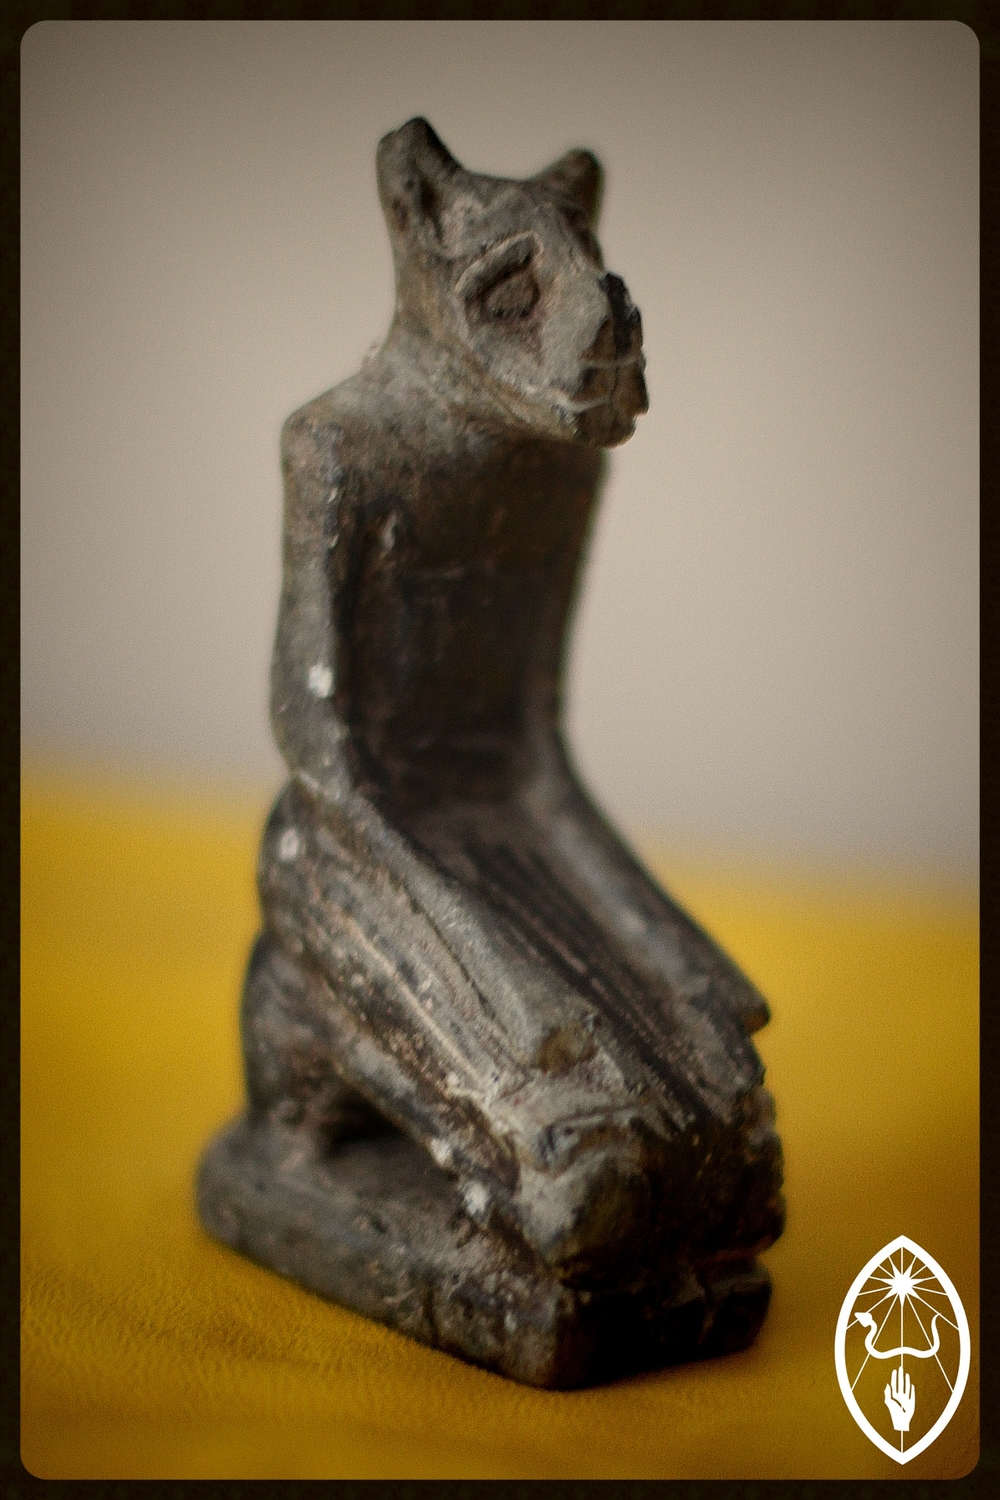 egyptian-figurine-front-right.jpg